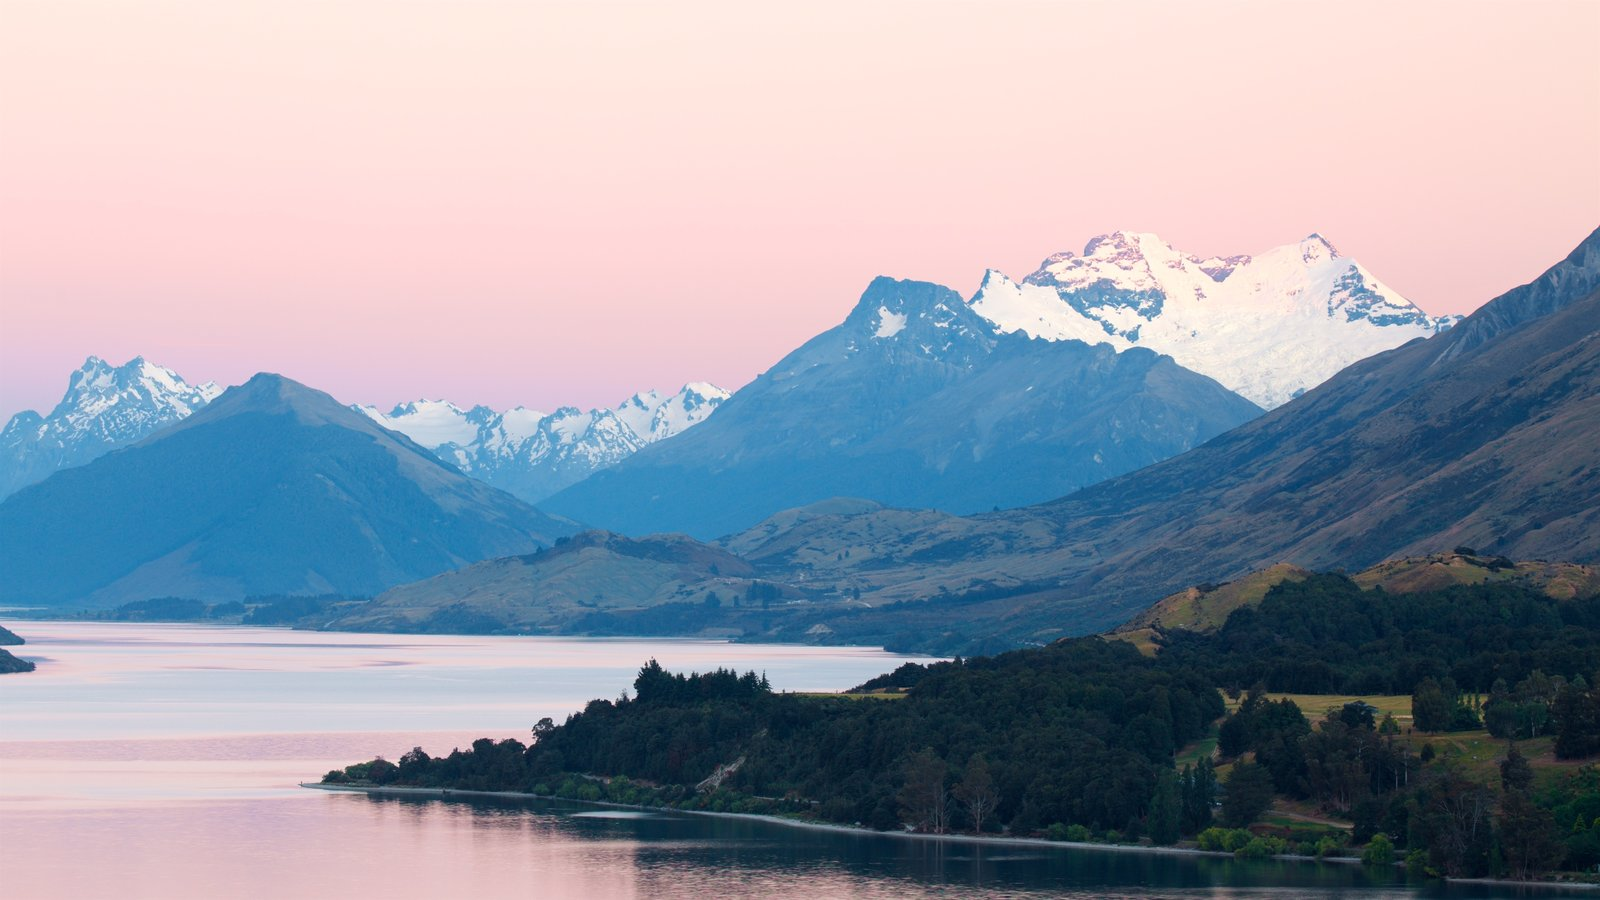 Lake Wakatipu which includes mountains, snow and a sunset